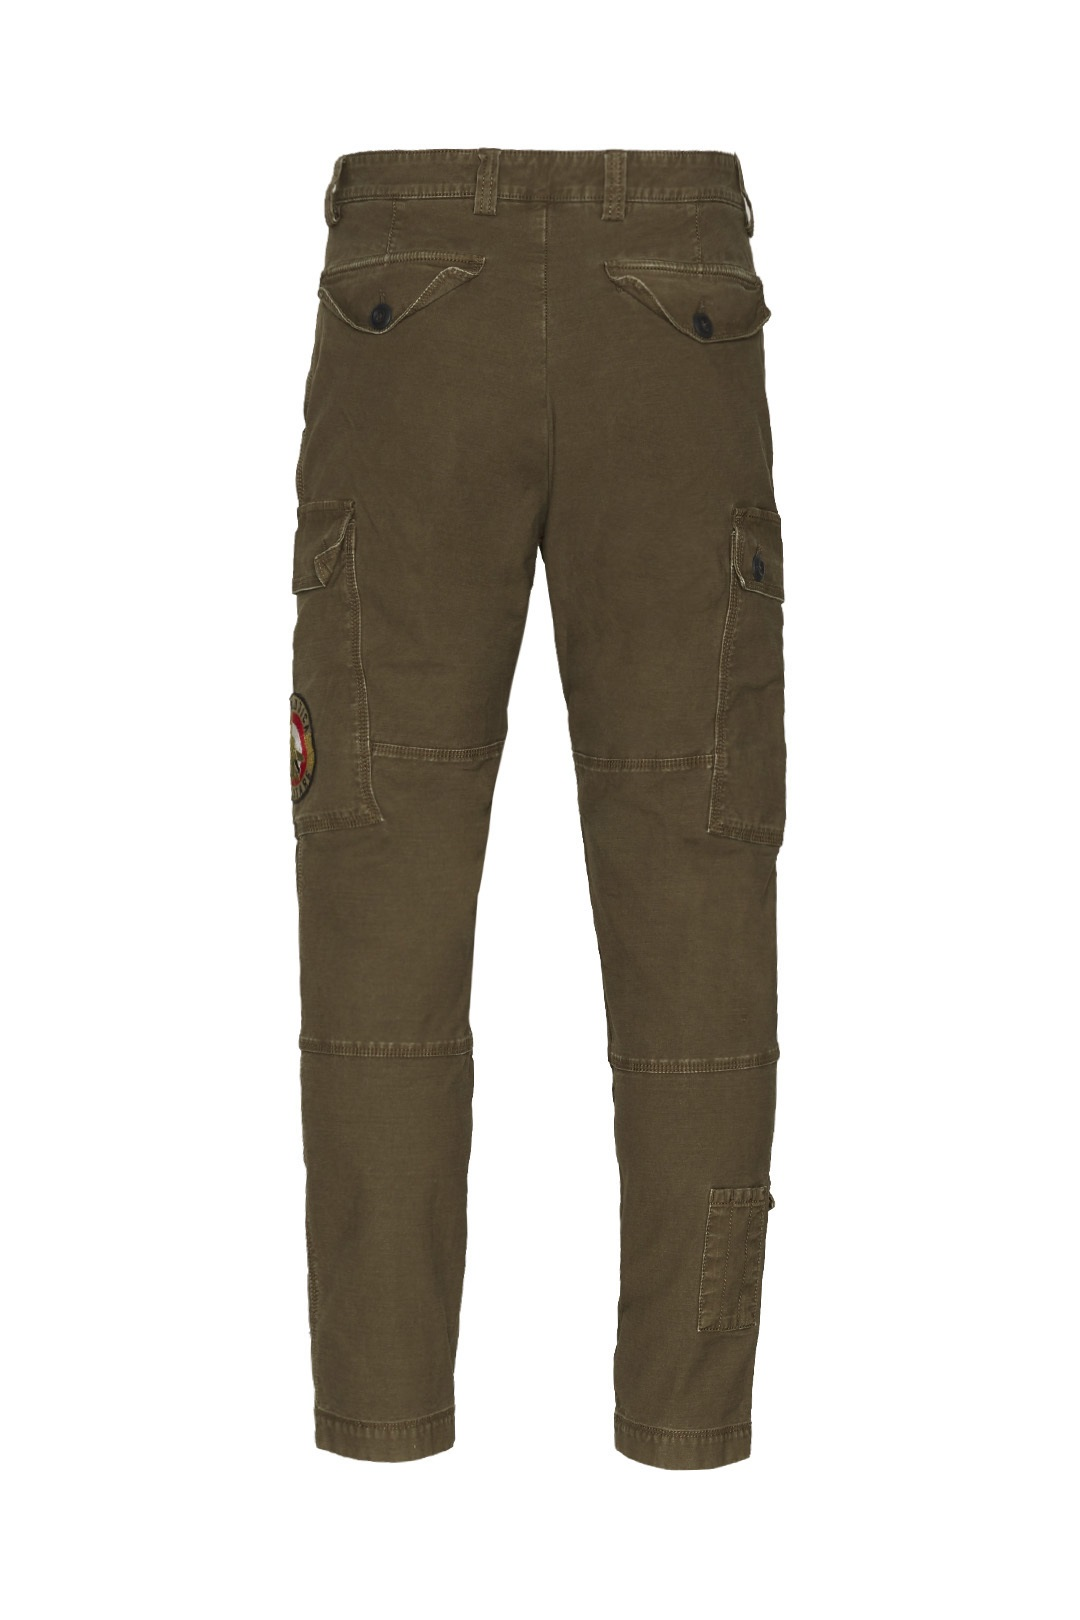 Multi-pockets trousers in stretch cotton 2